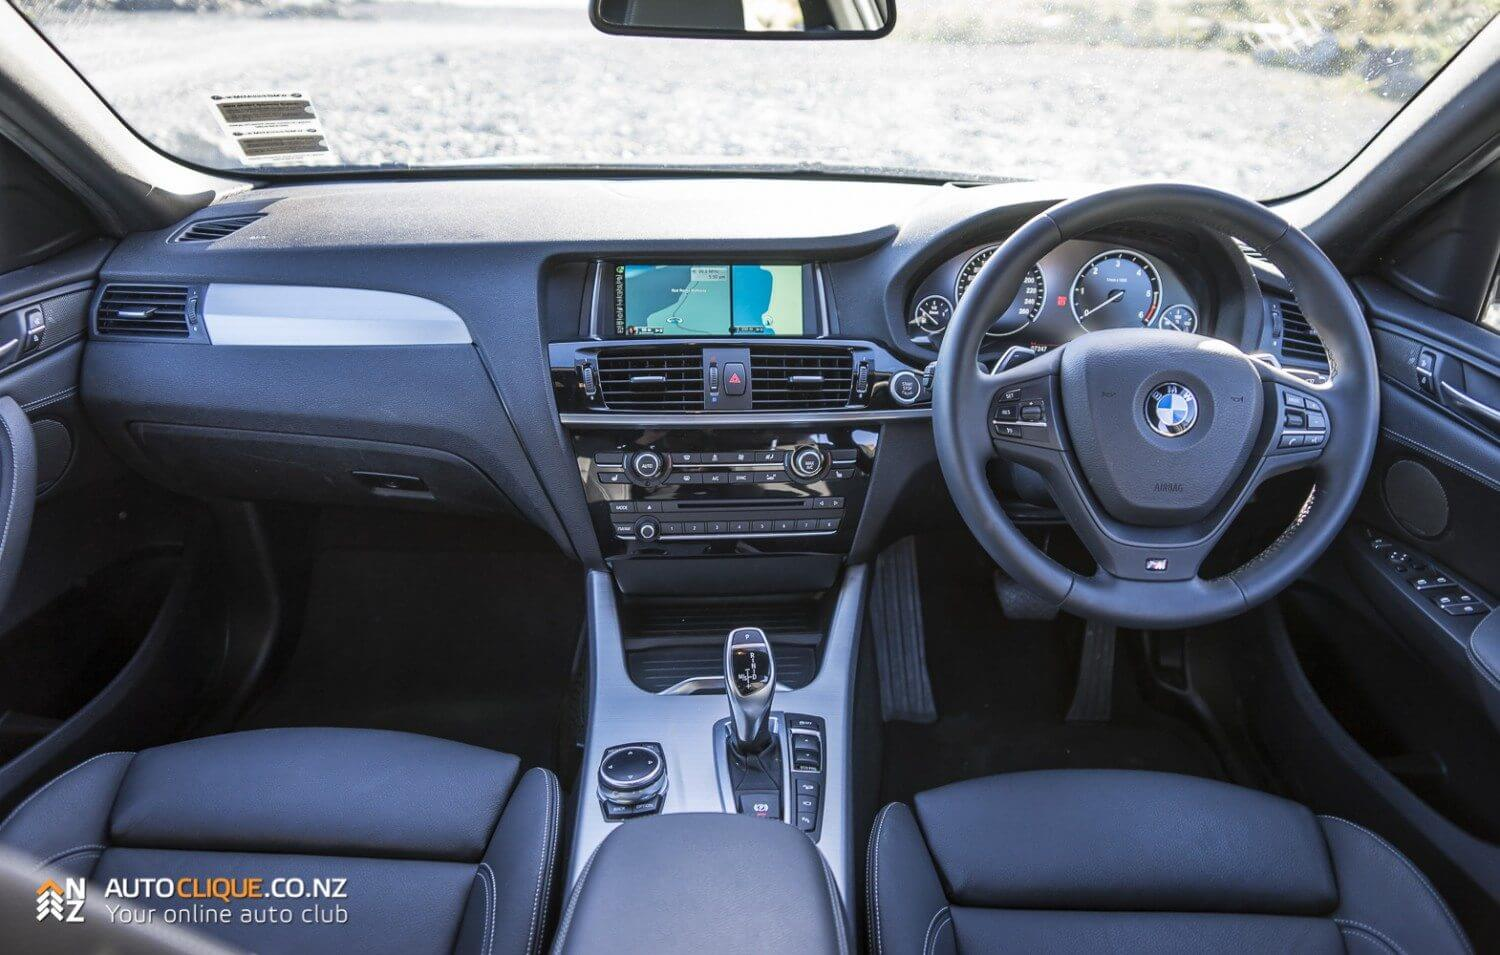 BMW-X4-35d-RaodTested-Review-14